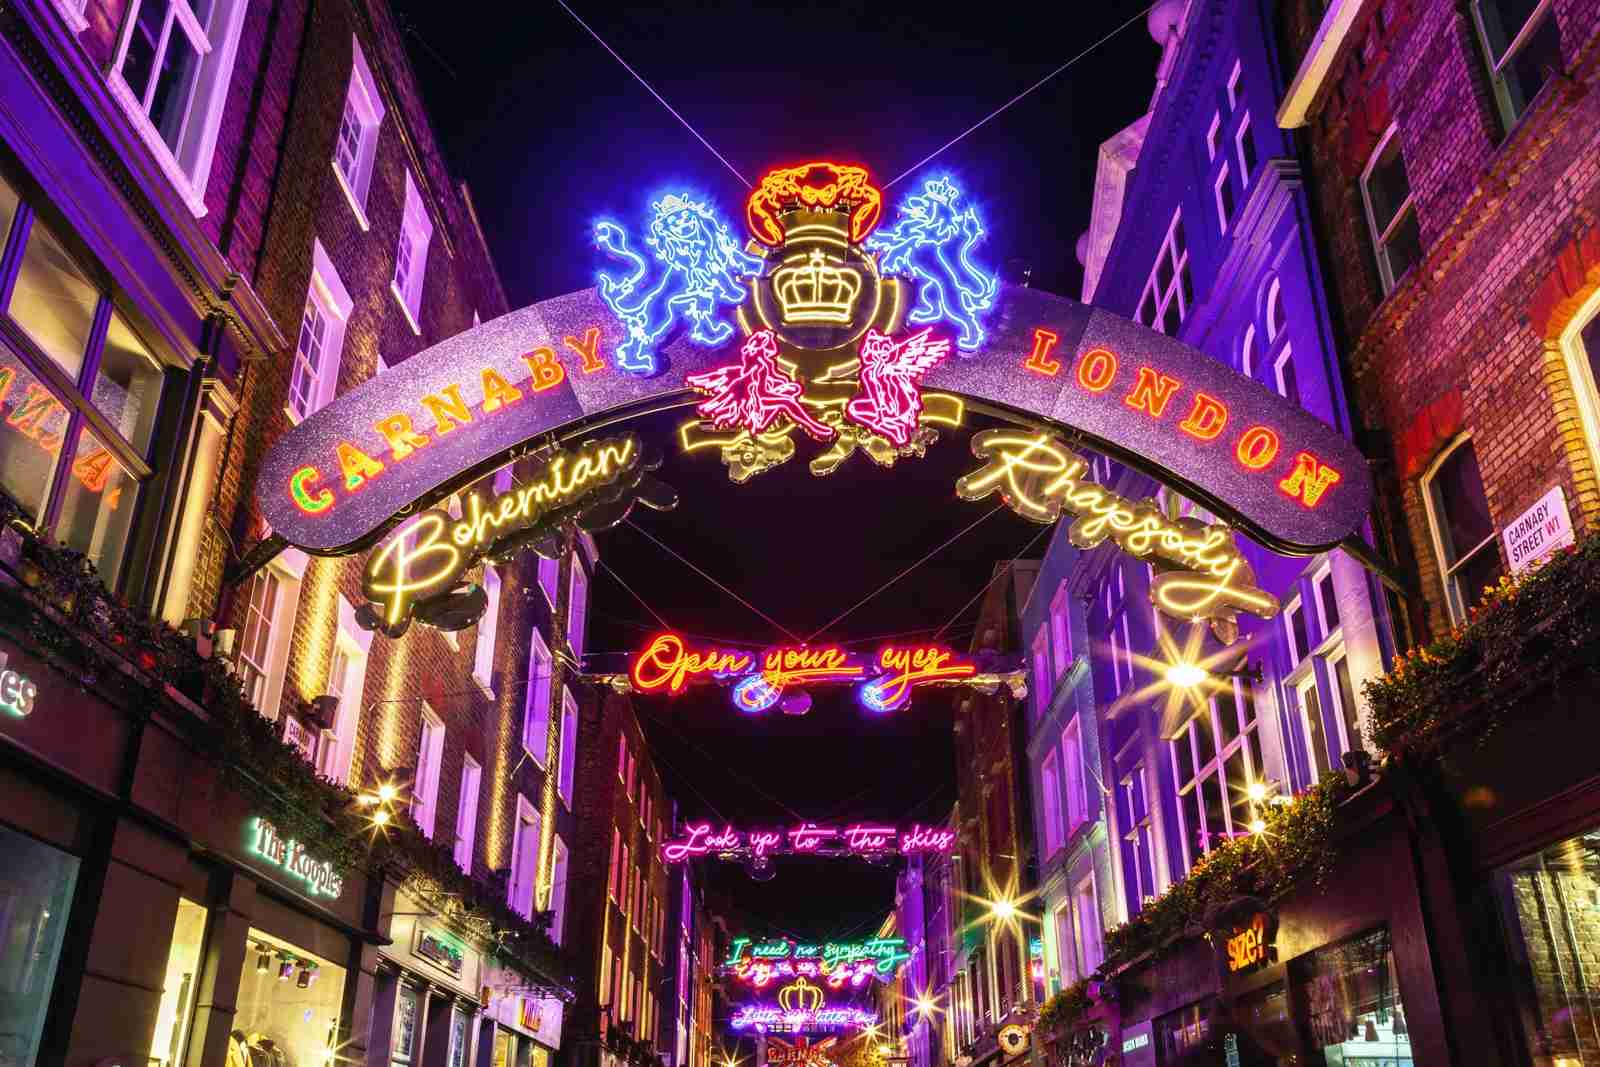 Carnaby Street in London. (Photo by Circle Creative Studio/Getty Images)